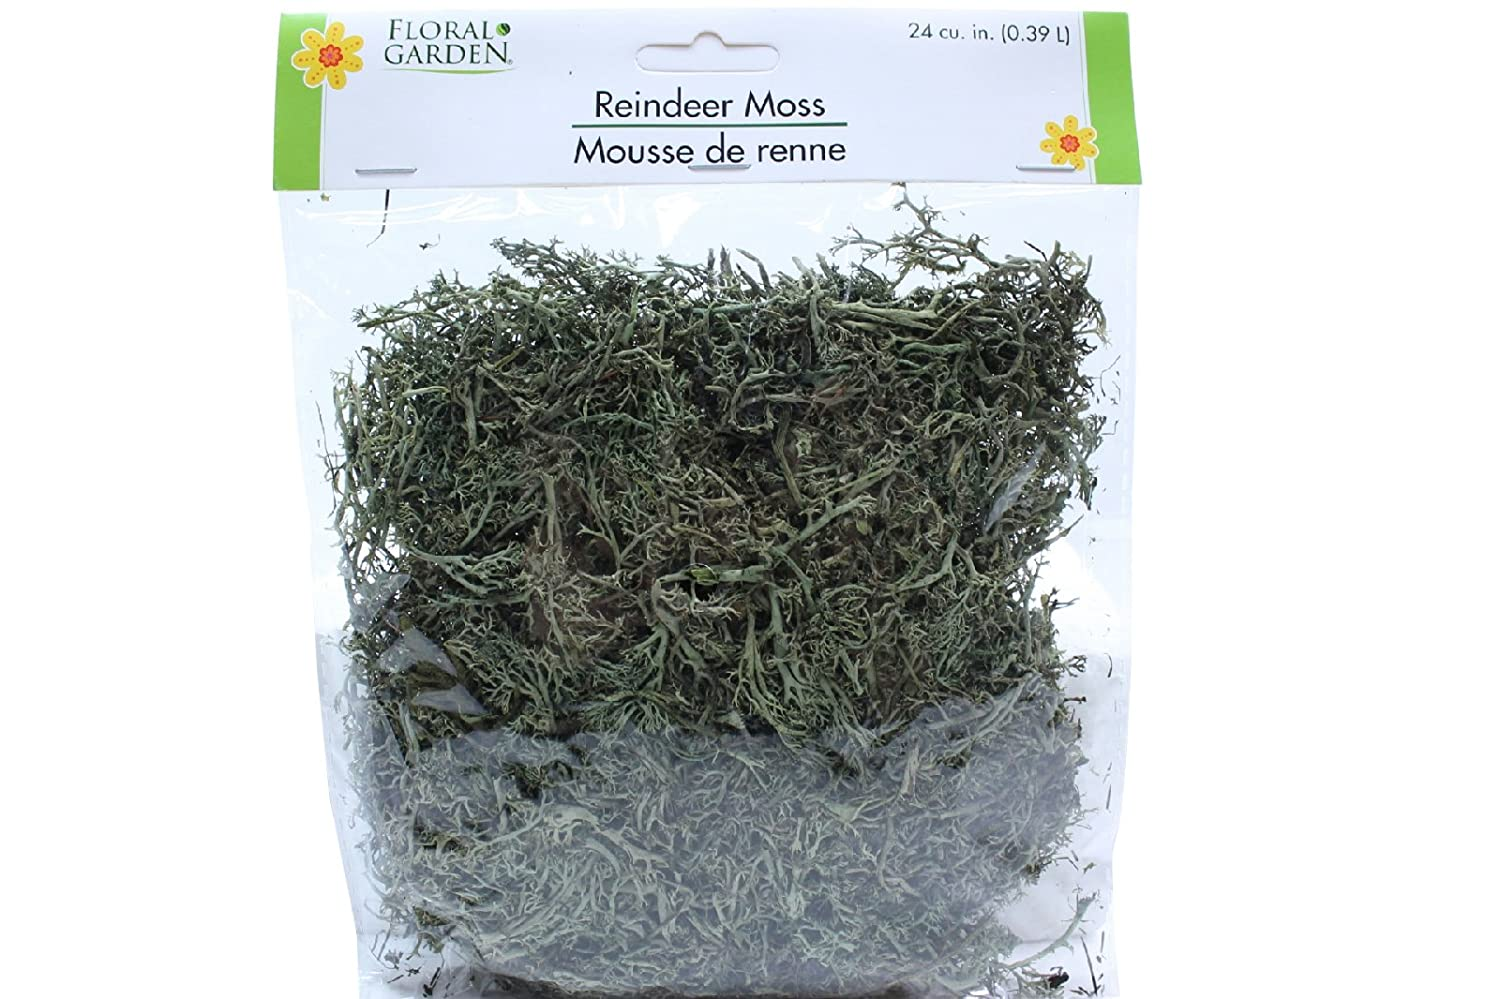 Floral Garden Reindeer Moss Halloween Decor 2 Packs 48 Cubic Inches